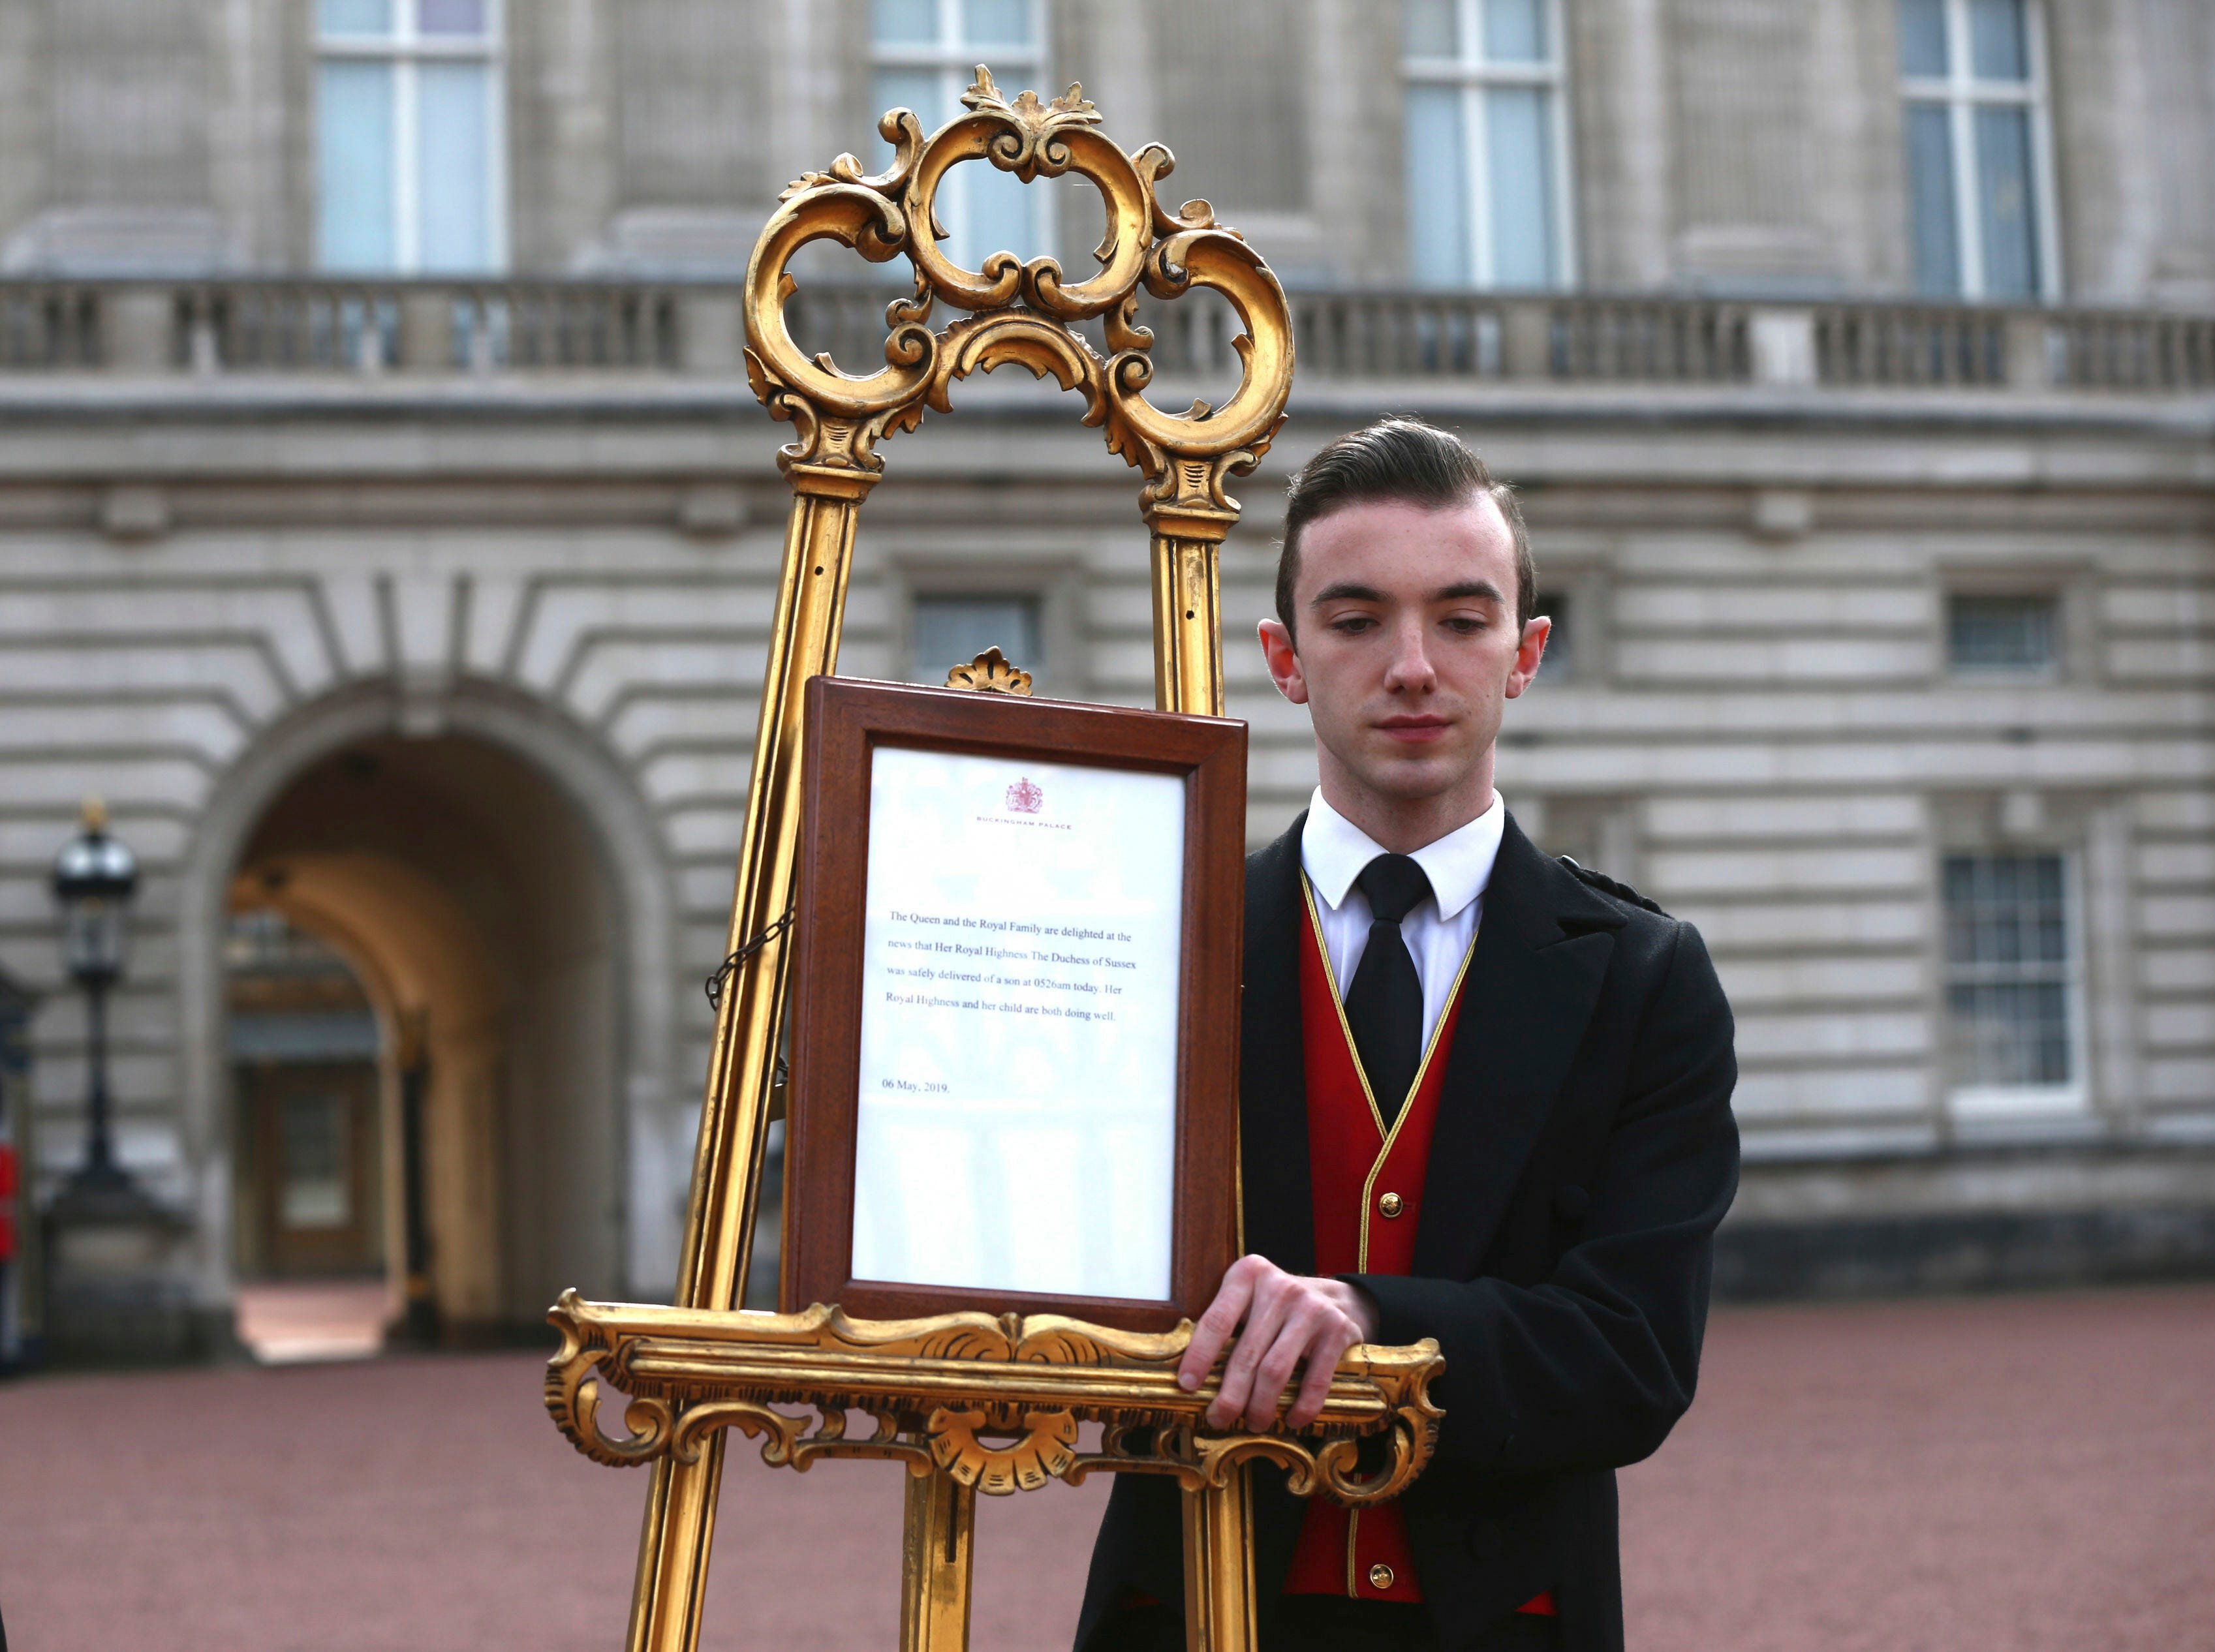 Footmen Stephen Kelly brings out the easel in the forecourt of Buckingham Palace in London to formally announce the birth of the royal baby boy